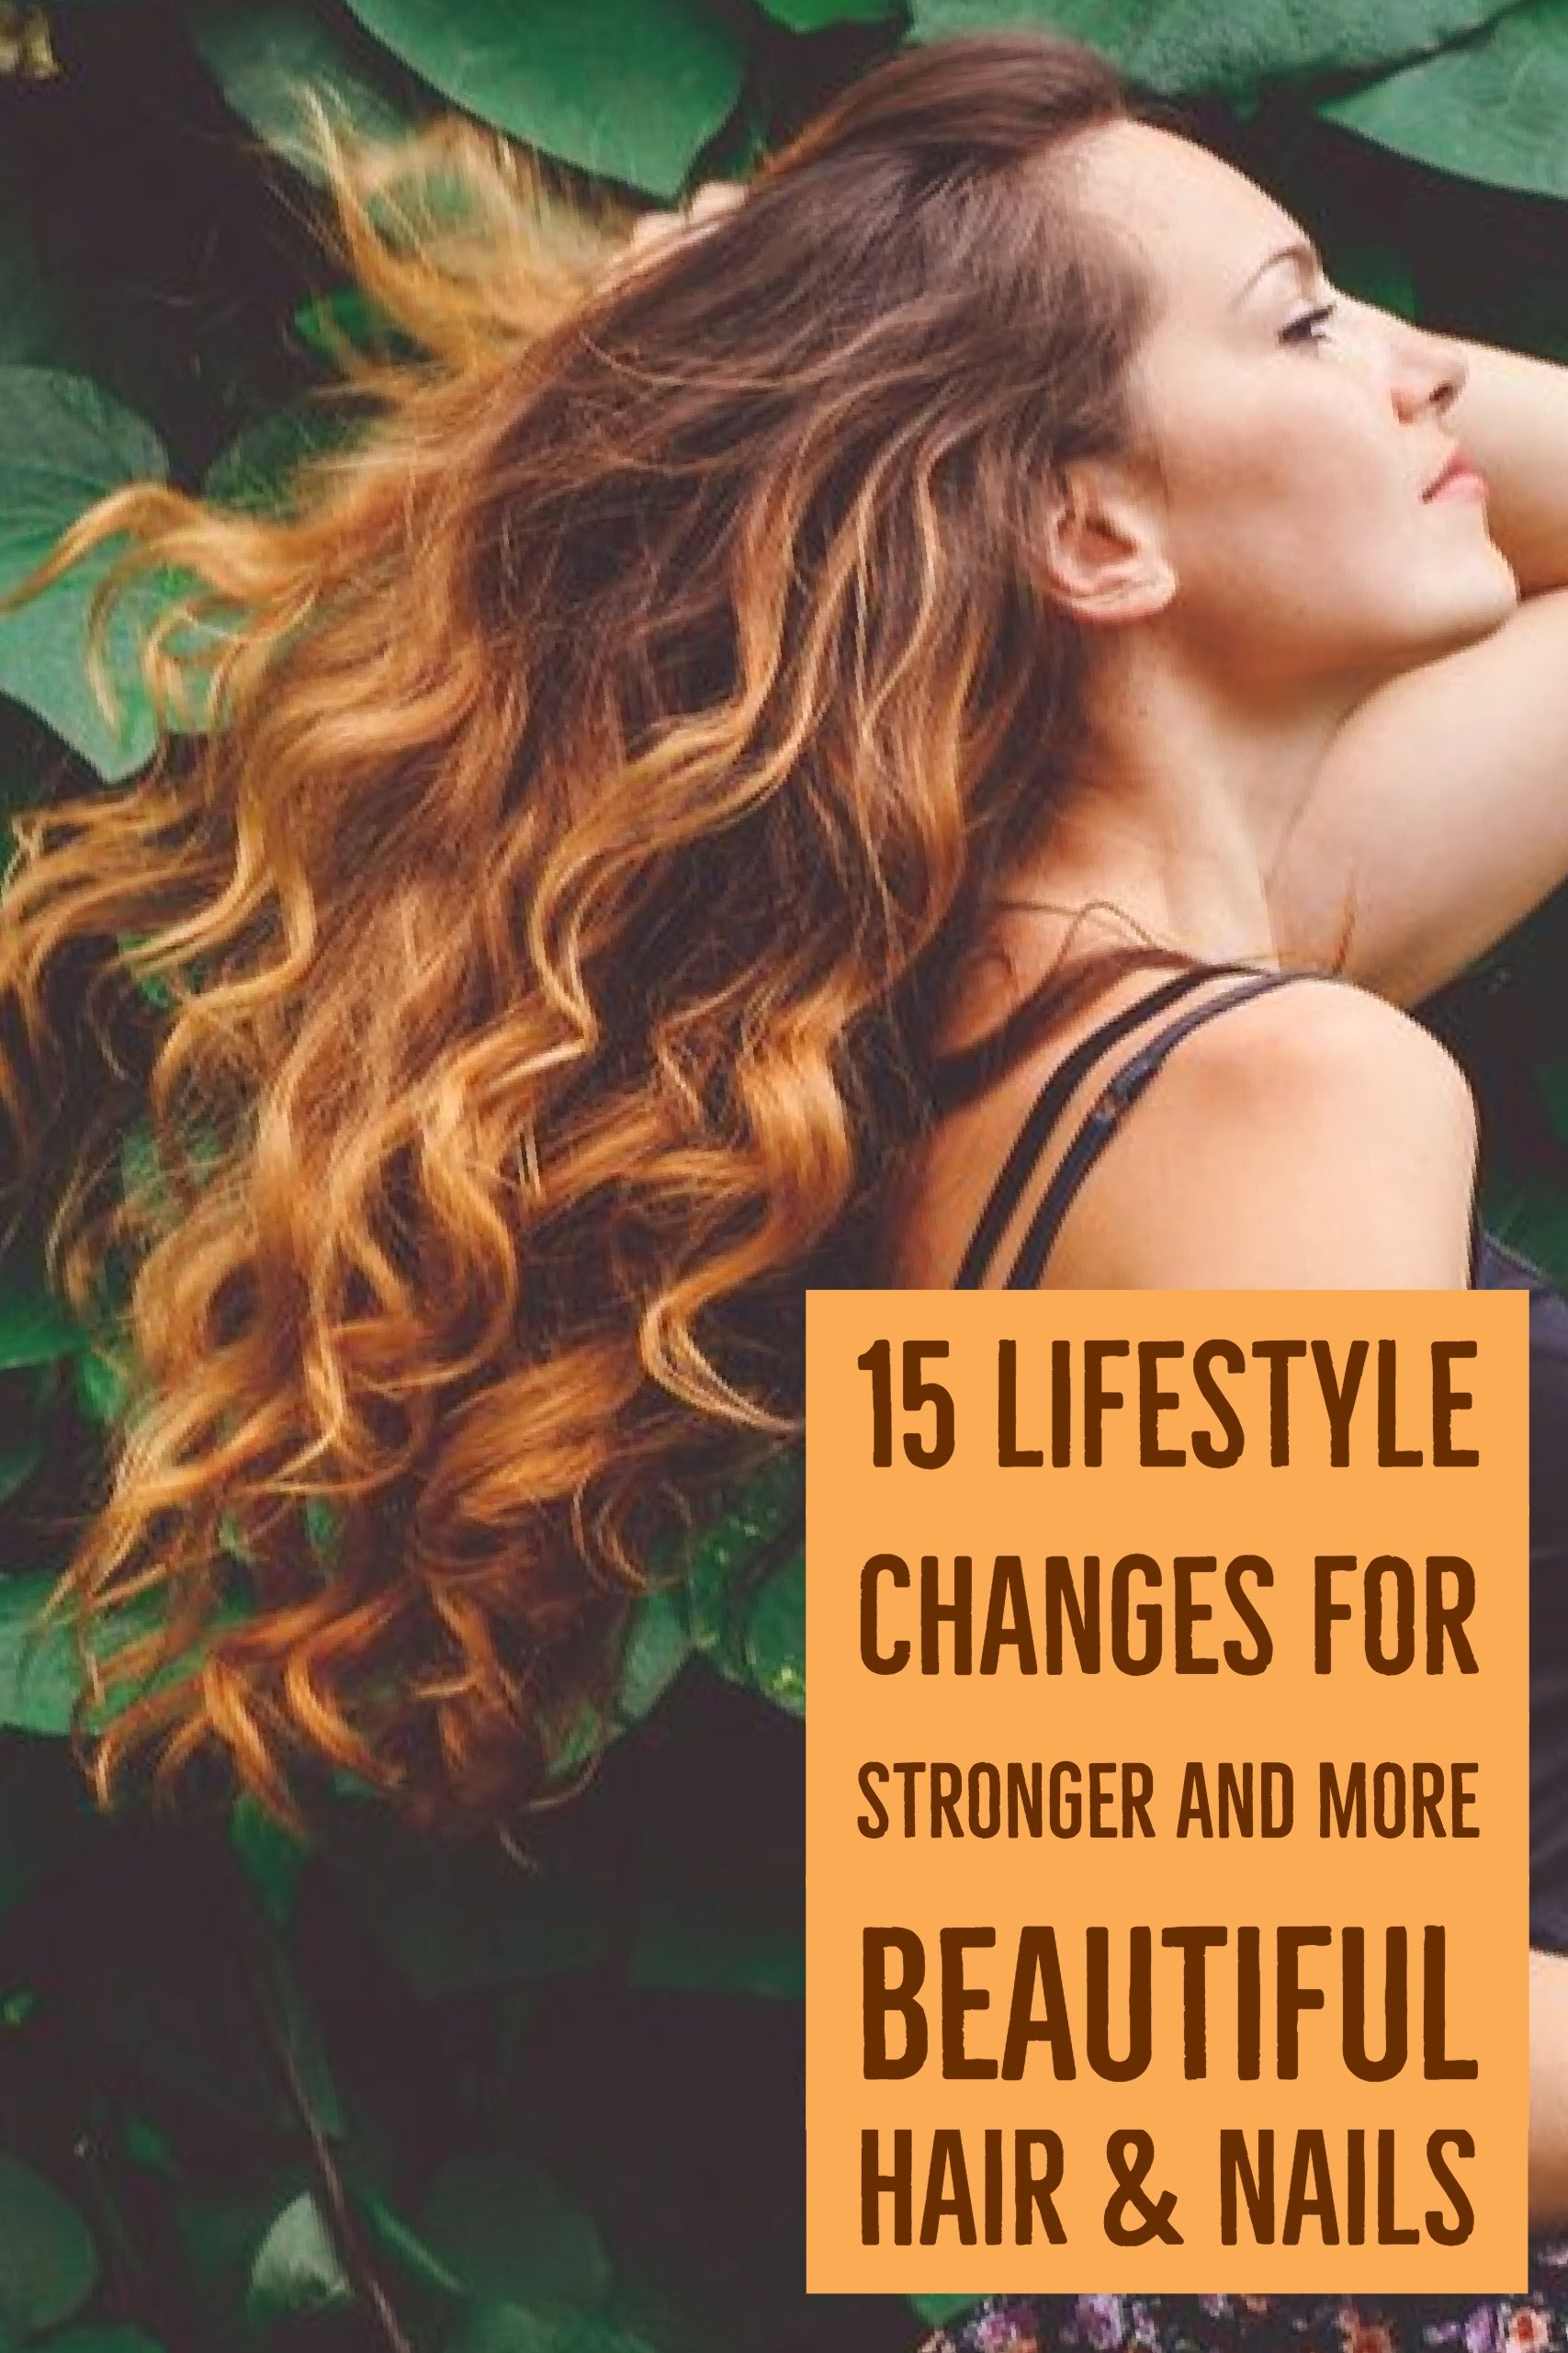 15 lifestyle changes for stronger and more beautiful hair